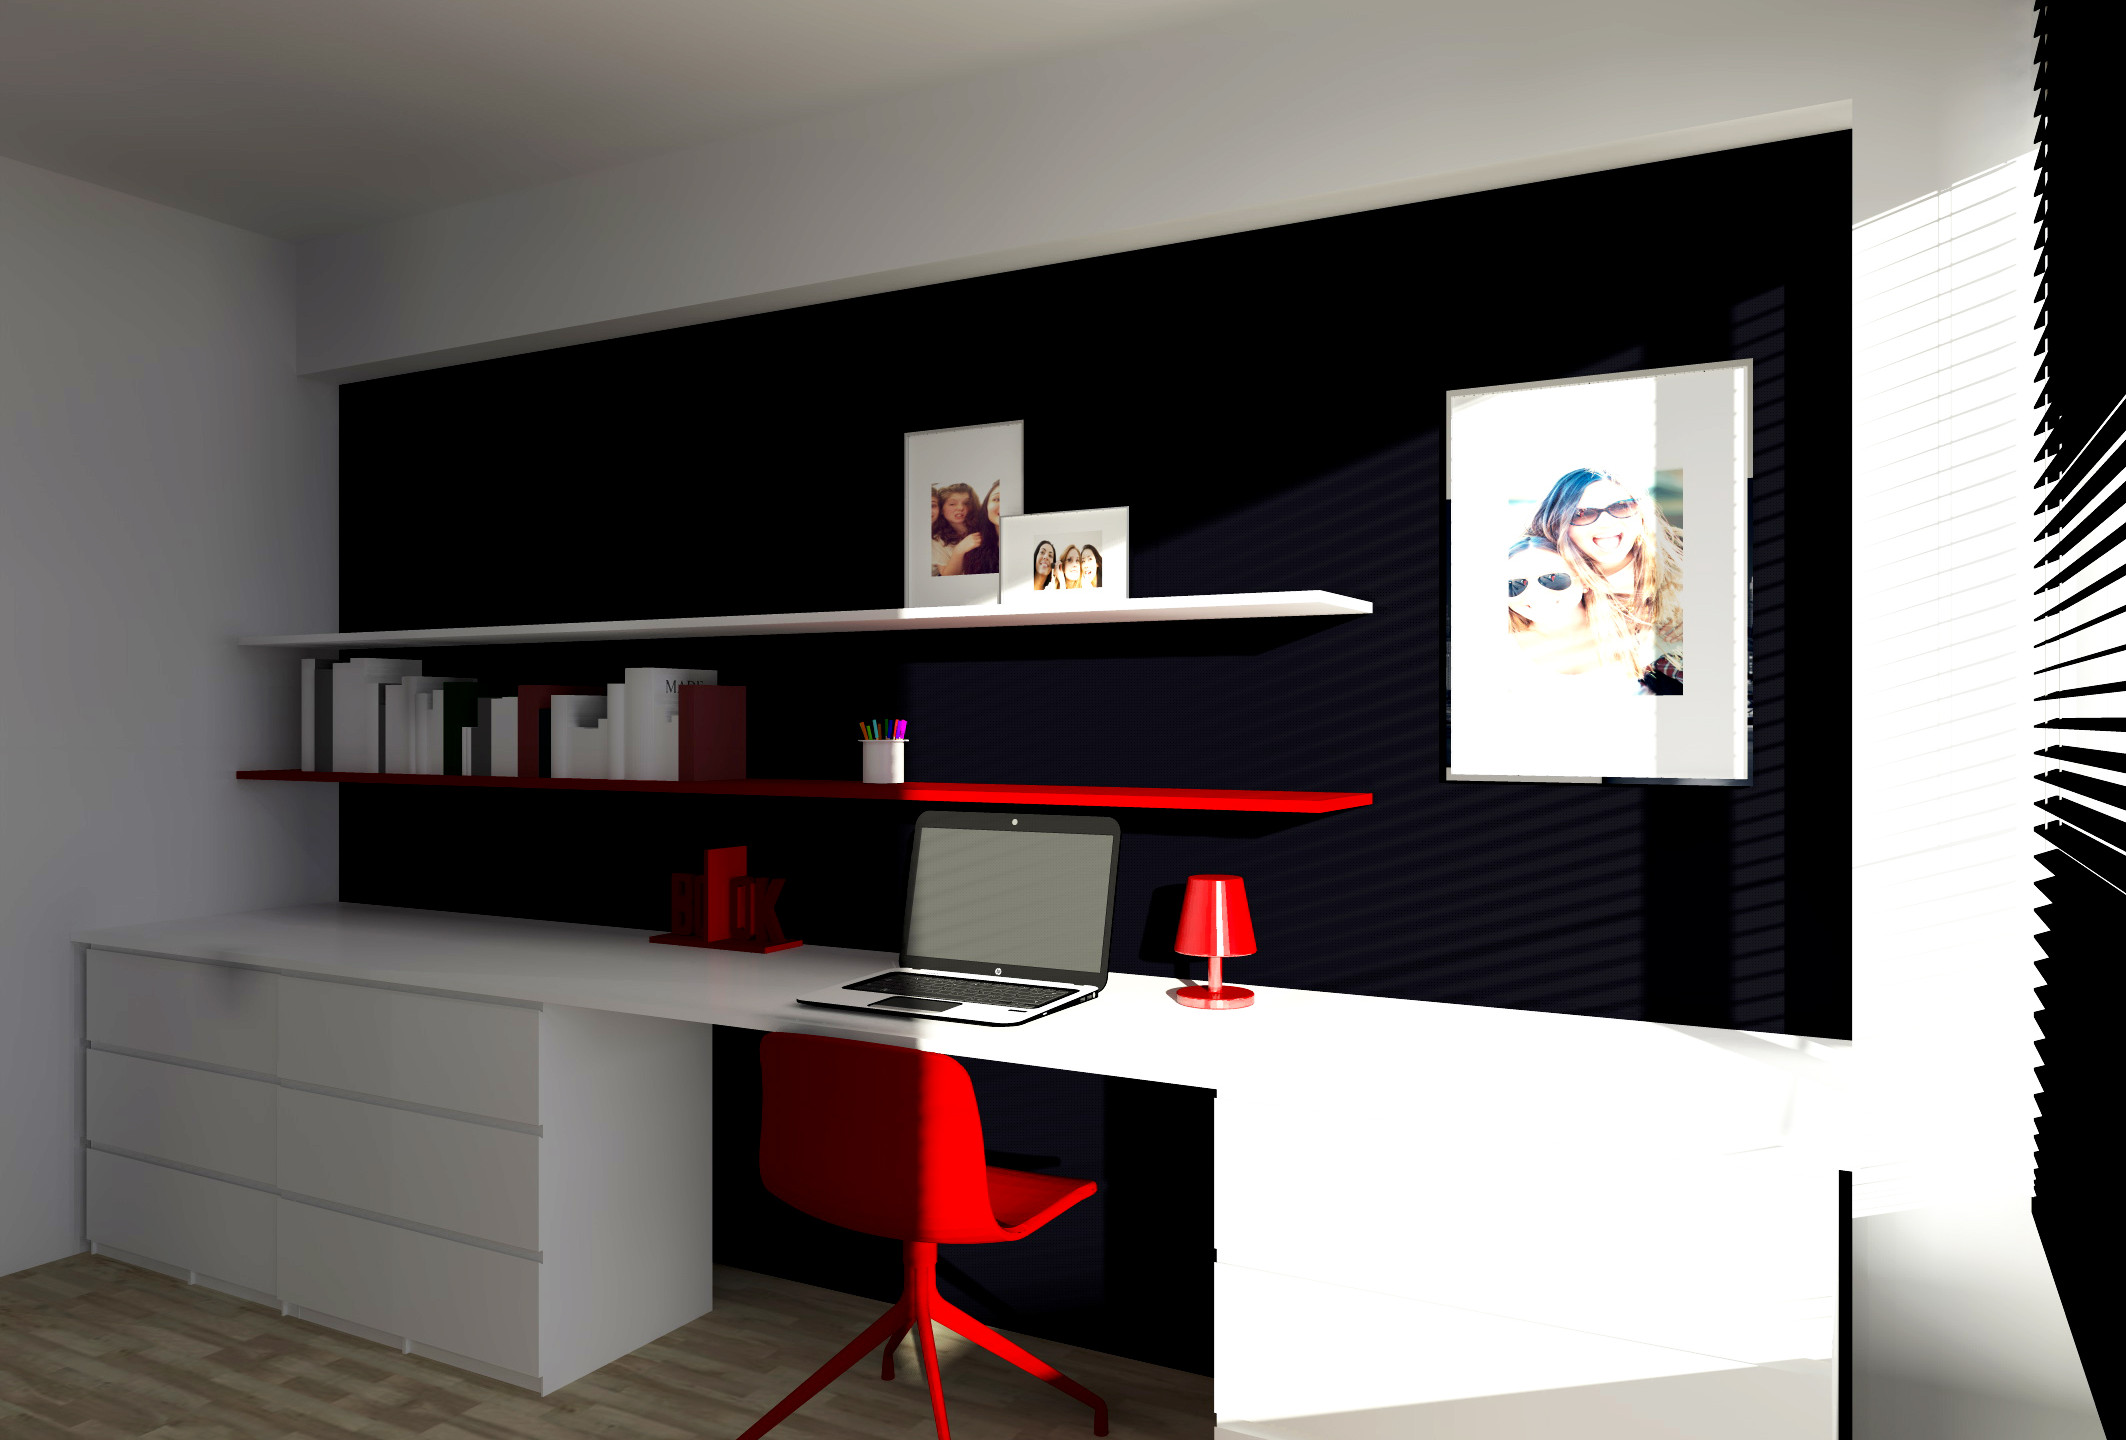 L&++_architecture_Epervier 011